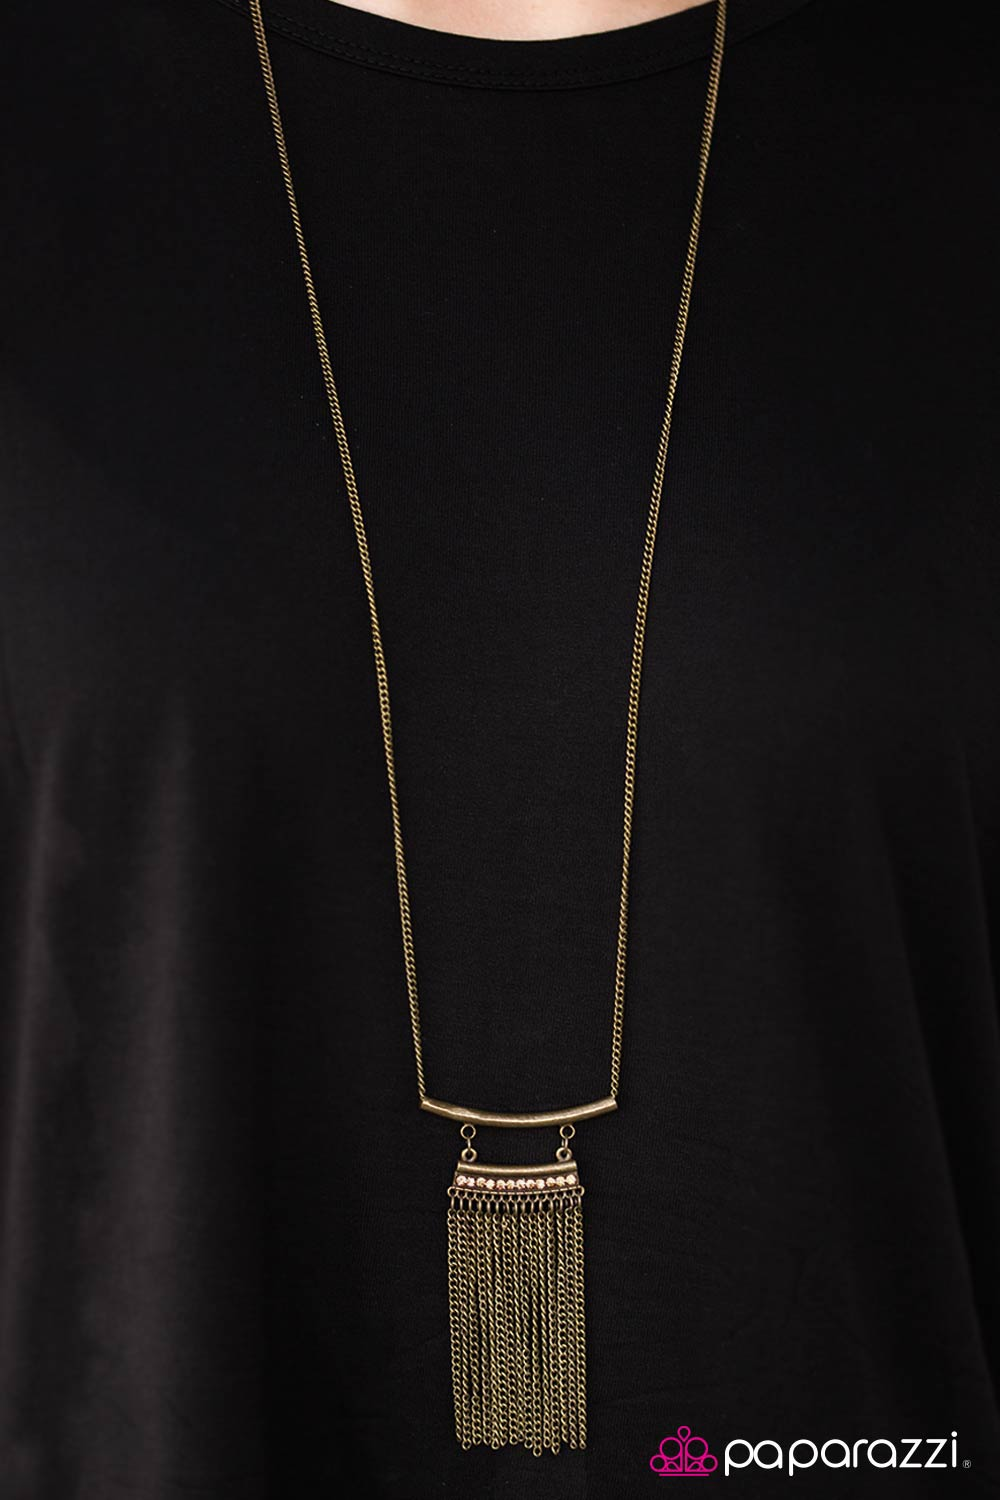 Tempting Temptress - Brass - Paparazzi necklace